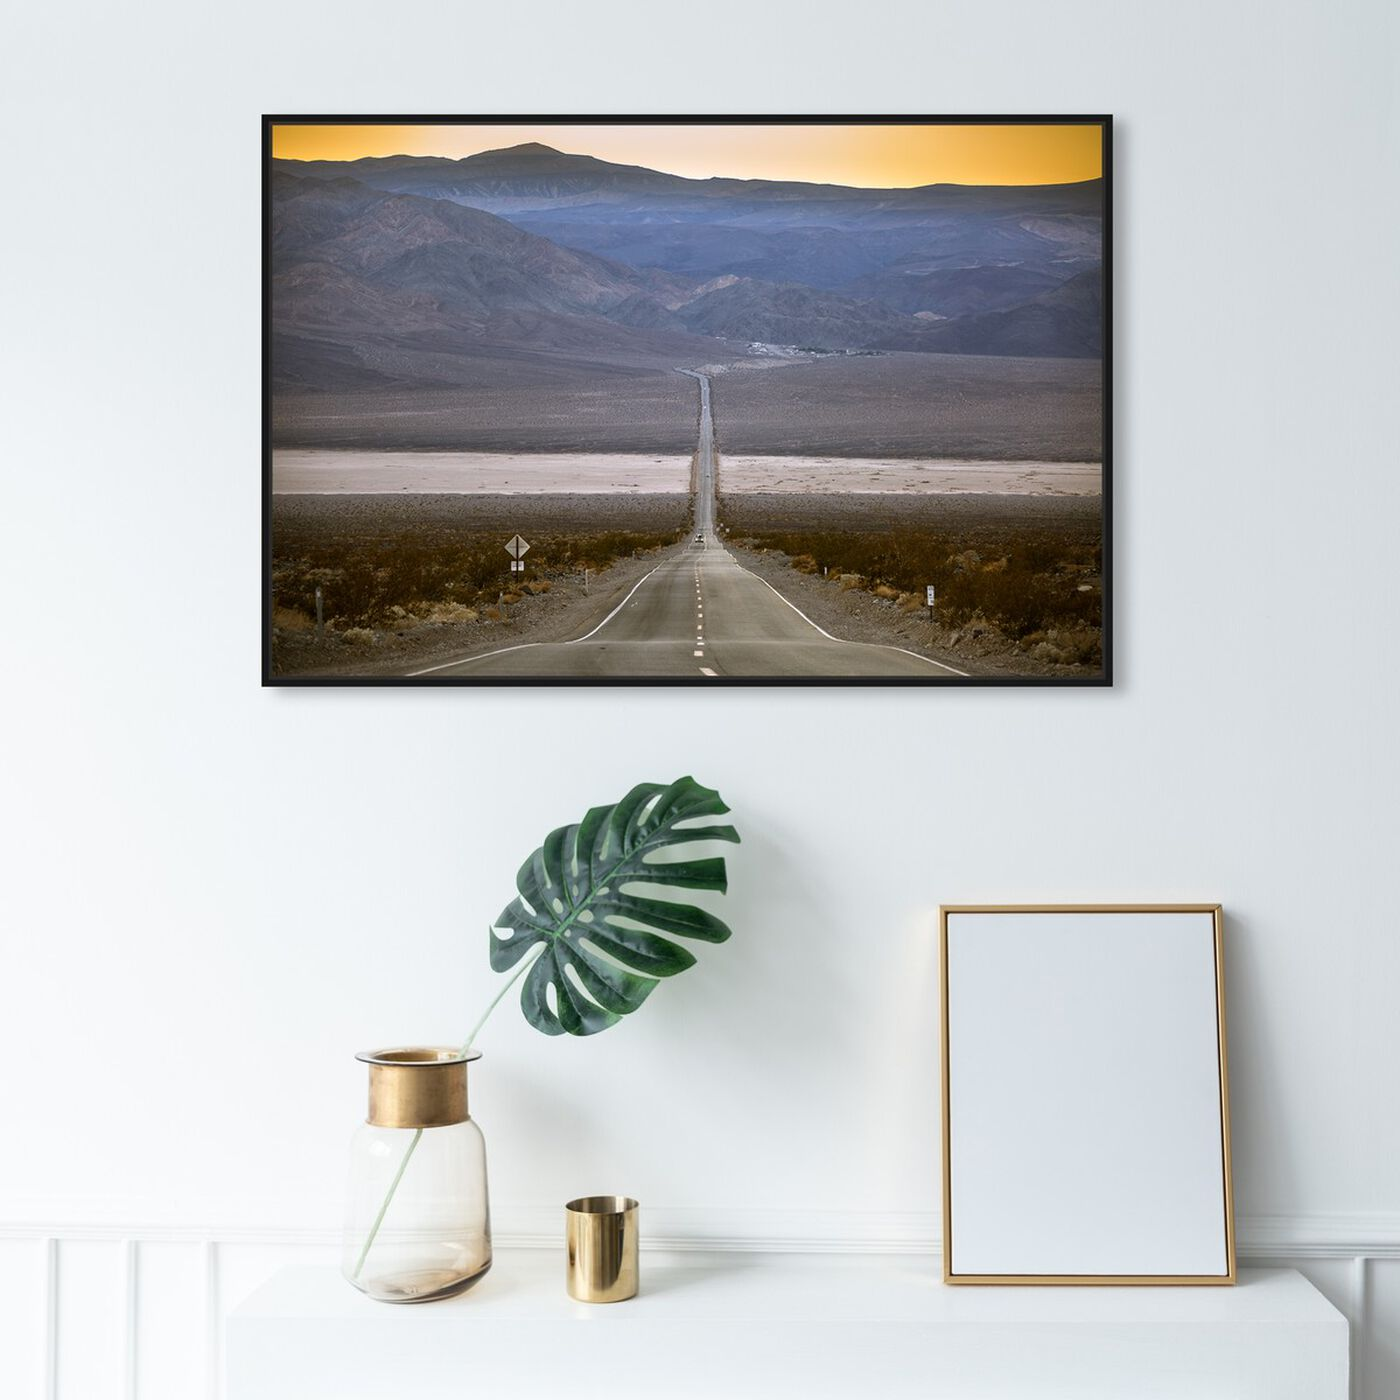 Hanging view of Curro Cardenal - American Road IV featuring nature and landscape and mountains art.